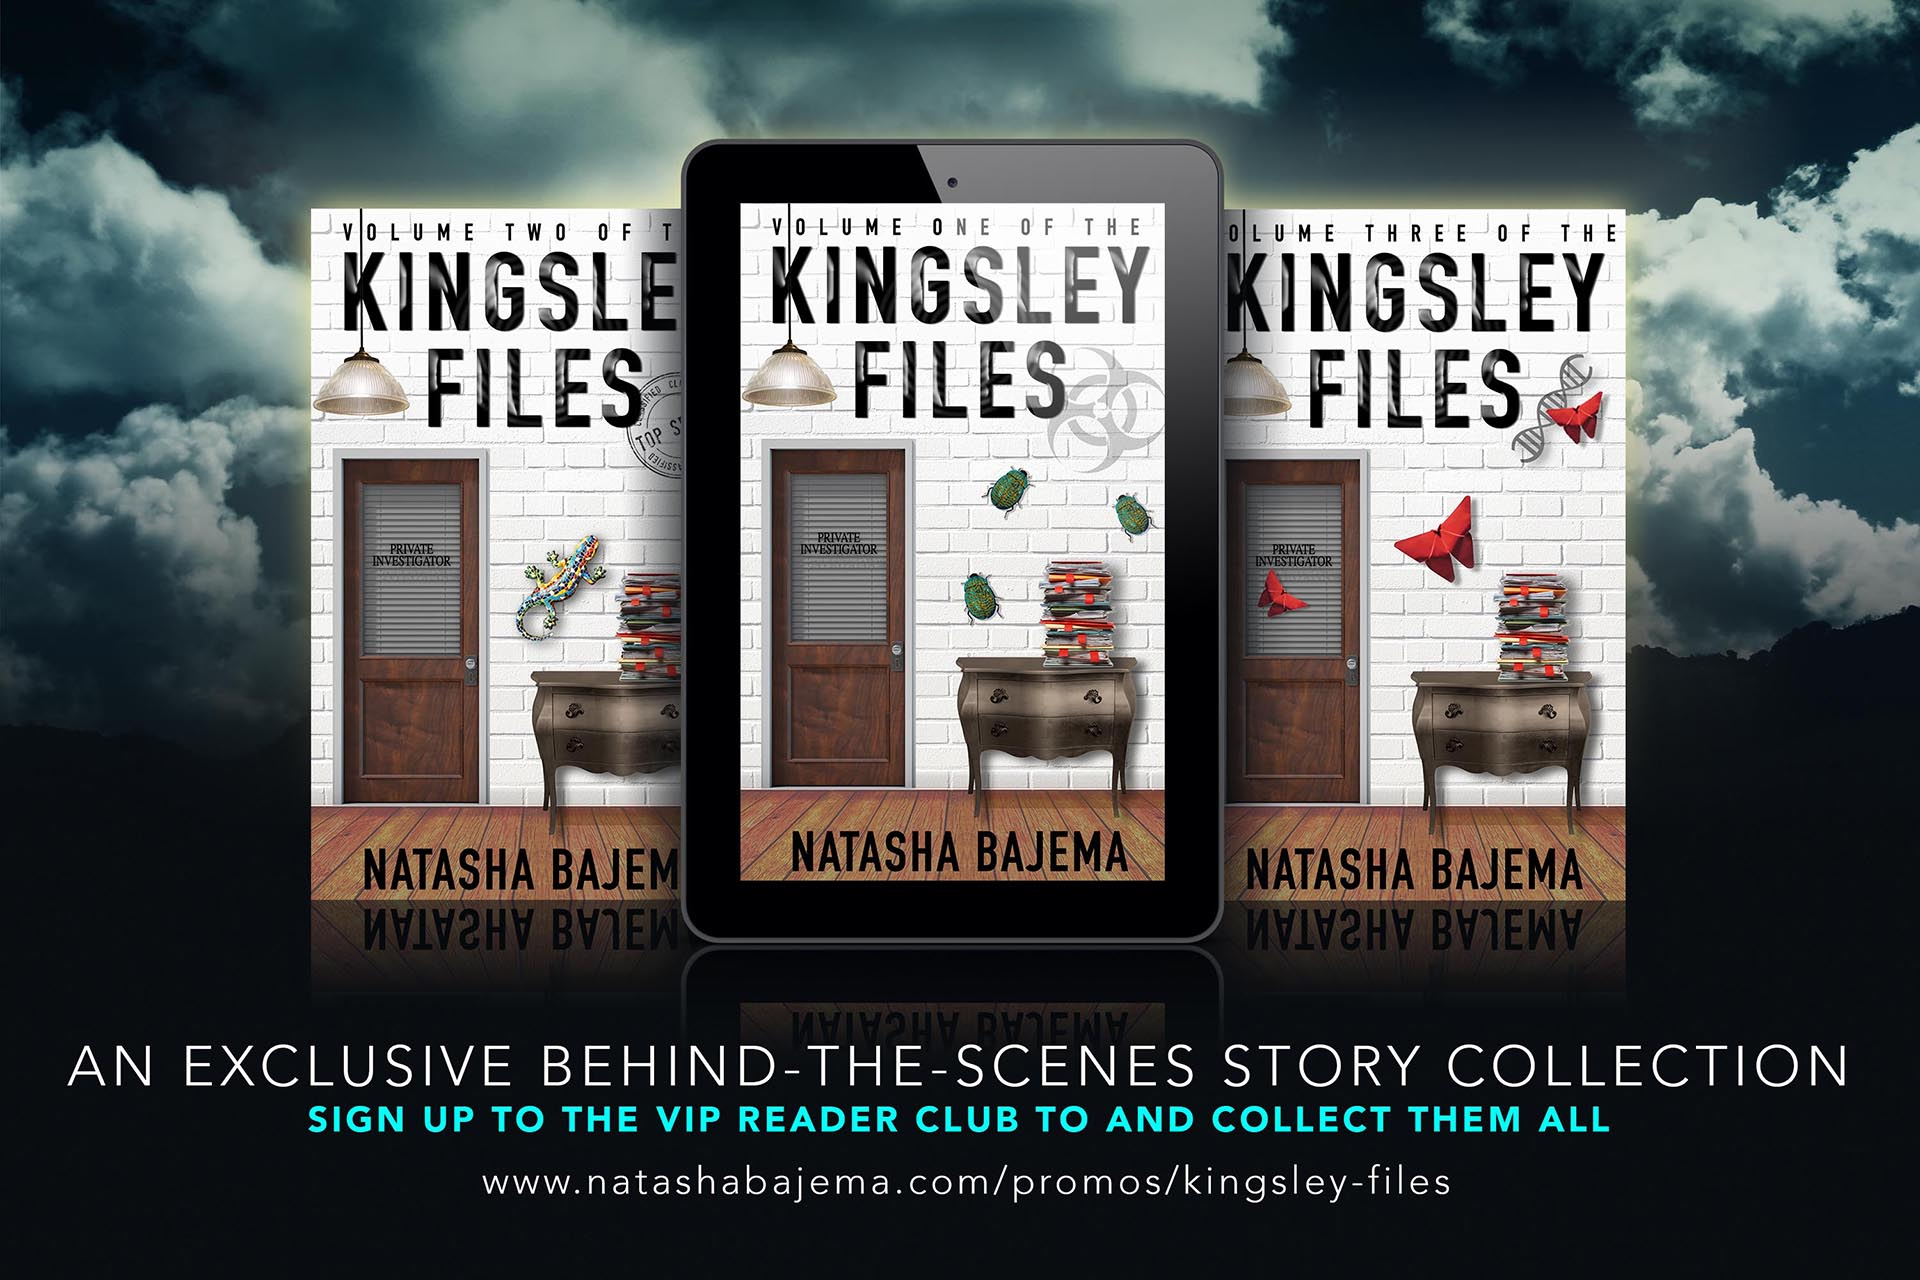 The Kingsley Files